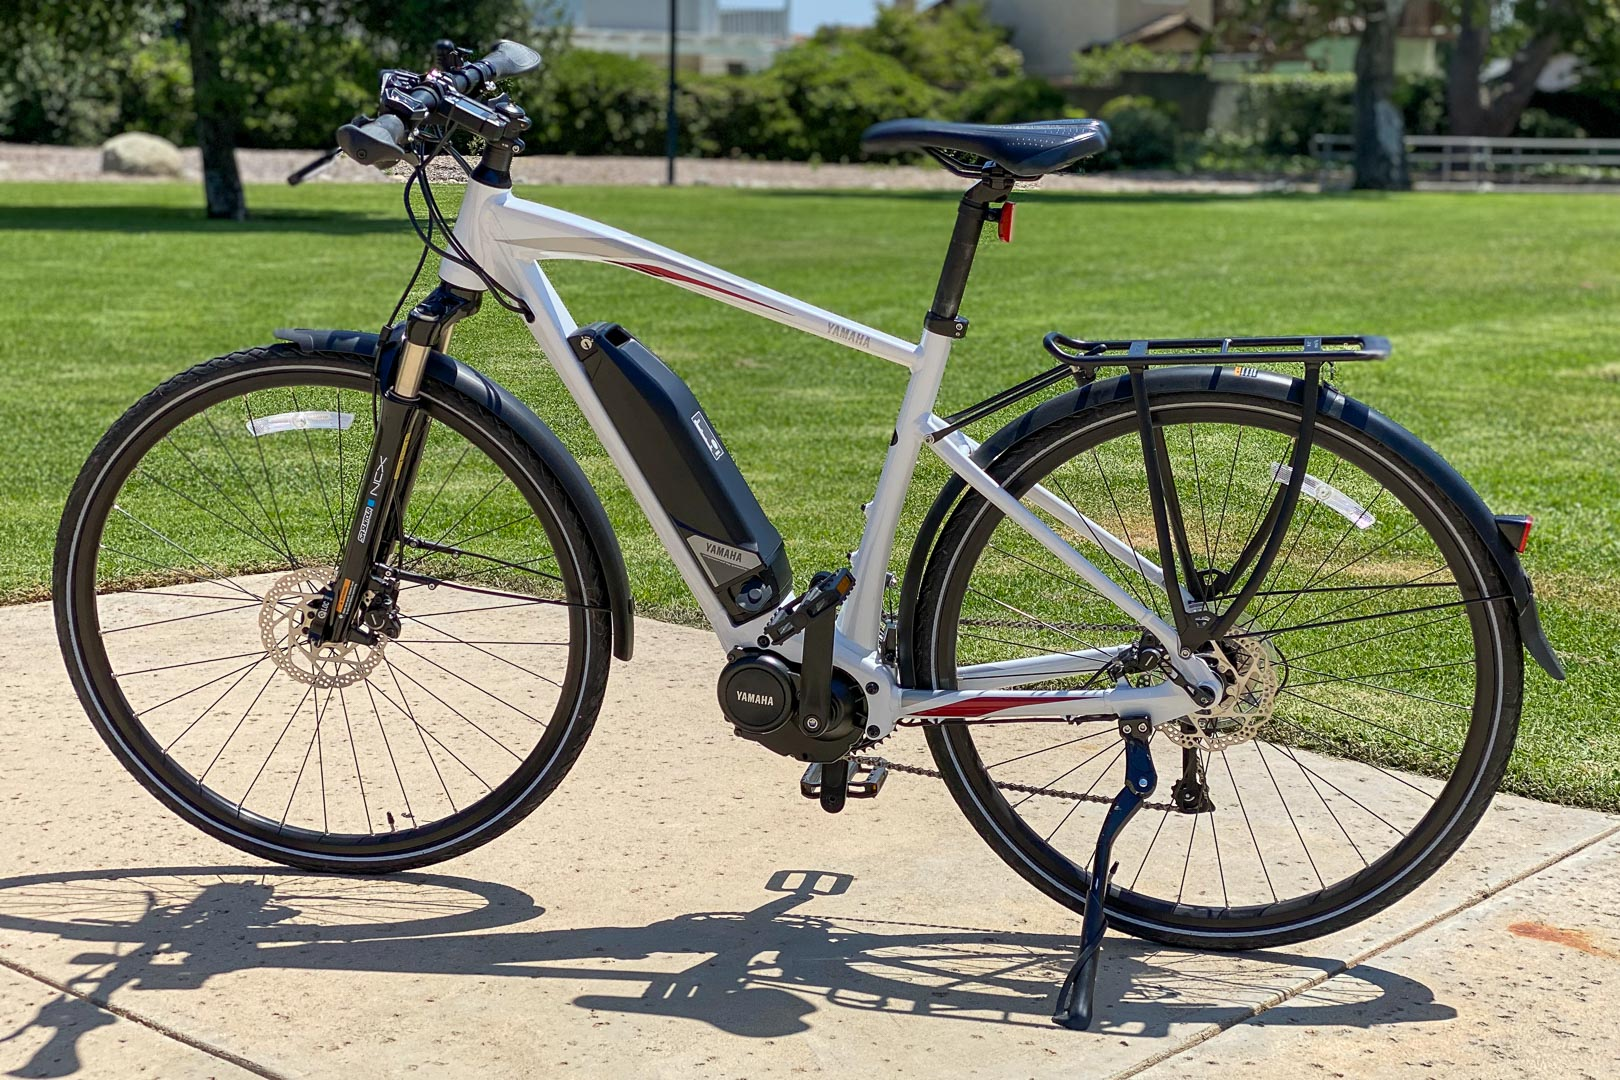 Yamaha Power Assist Bicycles - Electric Bicycle